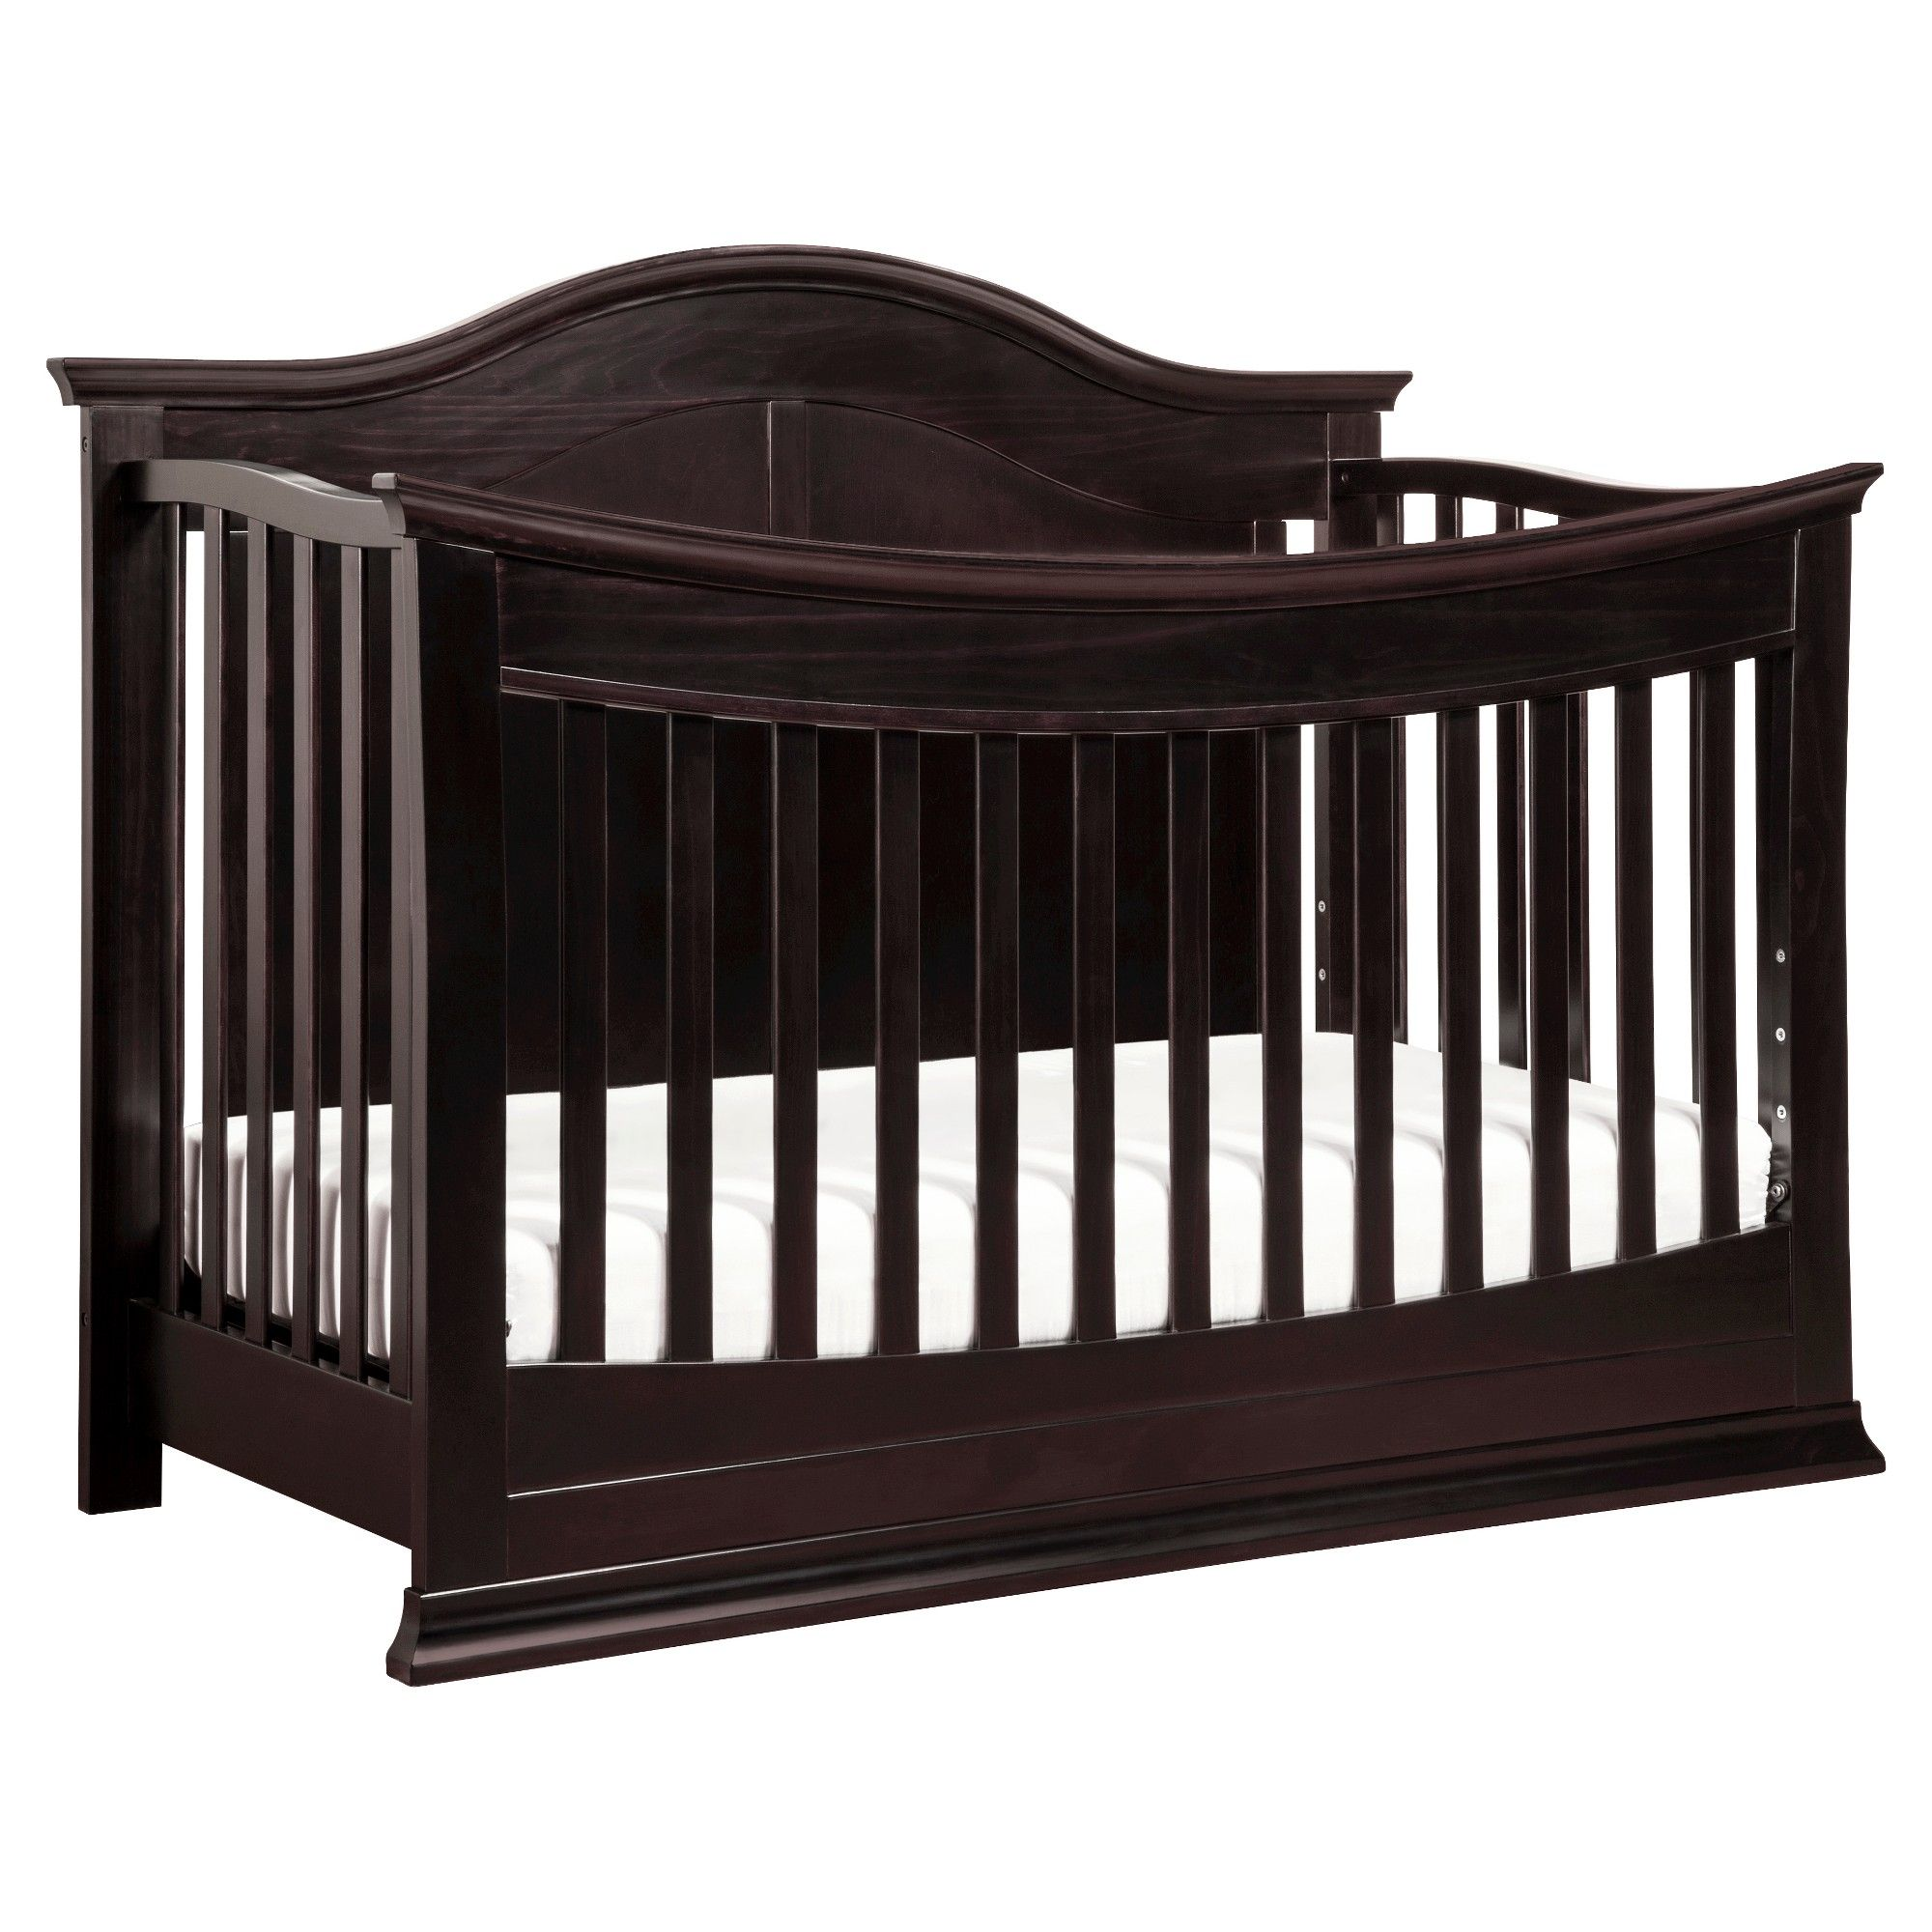 convertible jack bed to in with elegant classic of kalani children couch furniture cot davinci cribs amp beautiful crib our converts sleigh contemporary pinterest or french s a toddler holly rail